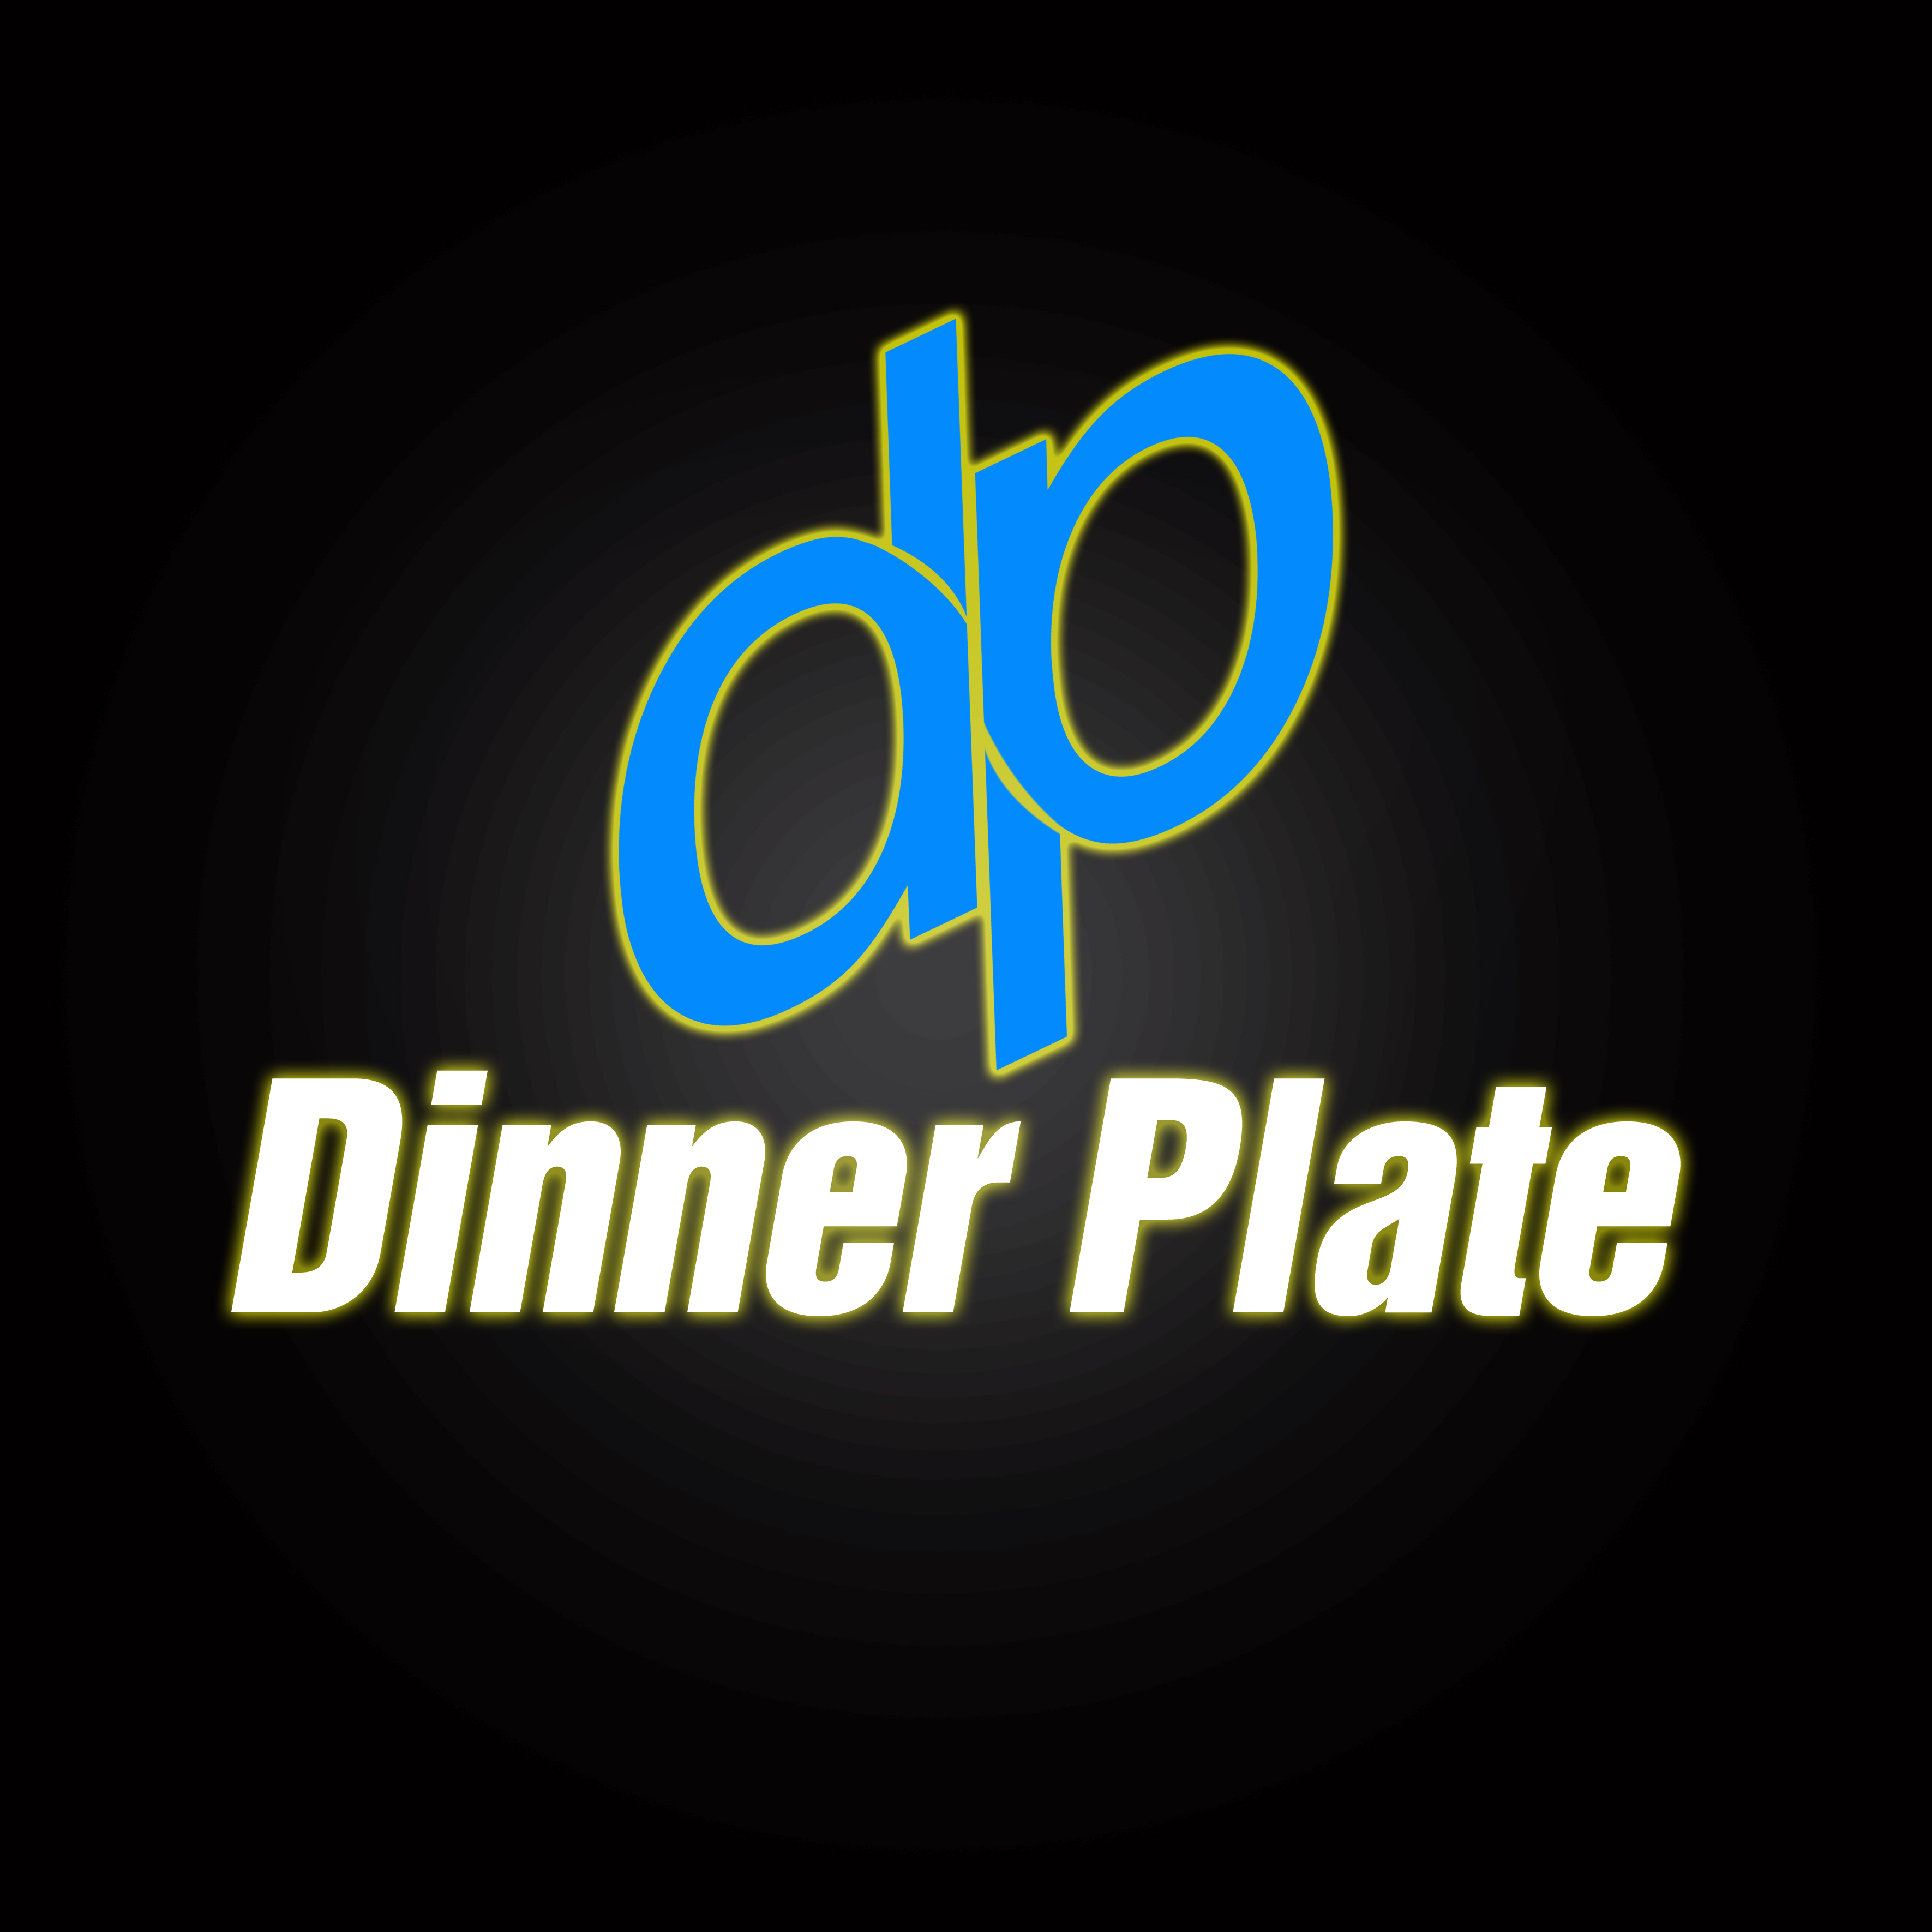 Logo Design by Roberto Sibbaluca - Entry No. 62 in the Logo Design Contest Imaginative Logo Design for Dinner Plate.